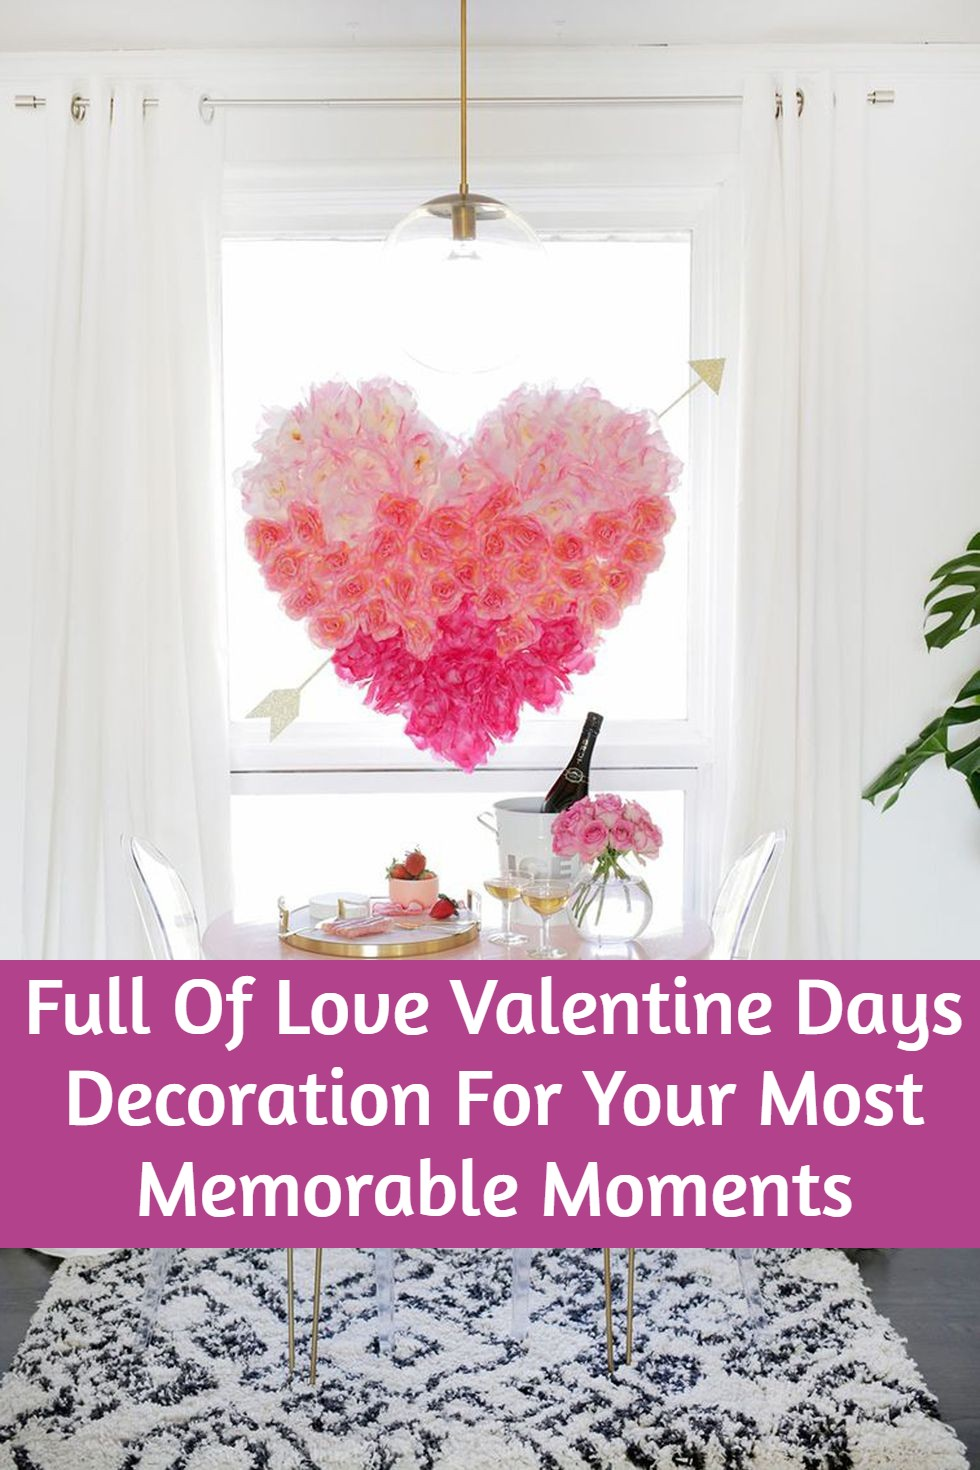 Full Of Love Valentine Days Decoration For Your Most Memorable Moments